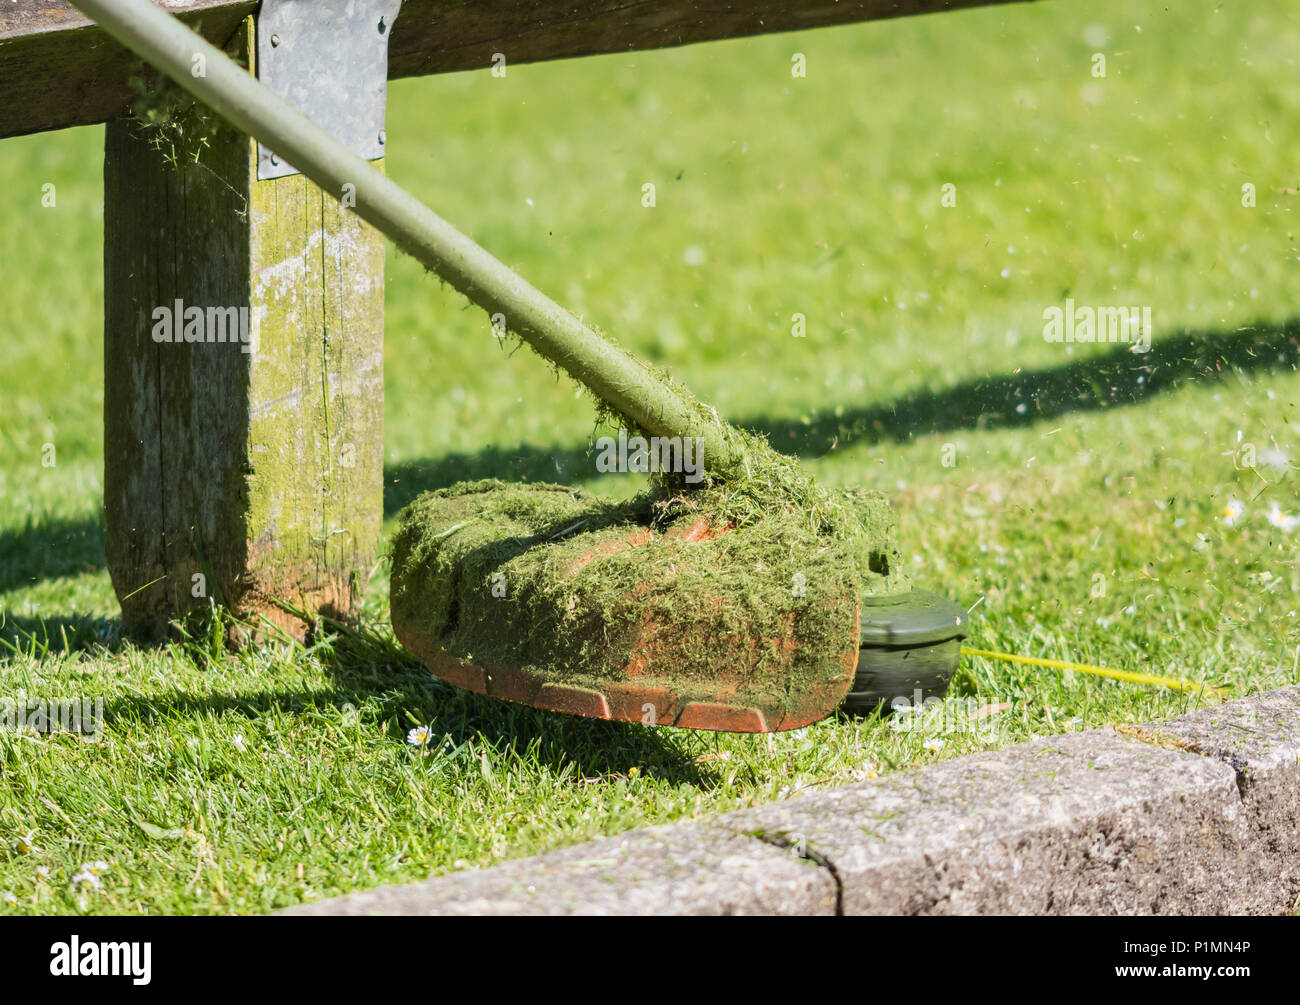 Closeup of a grass strimmer / grass trimmer in late Spring in a park. - Stock Image